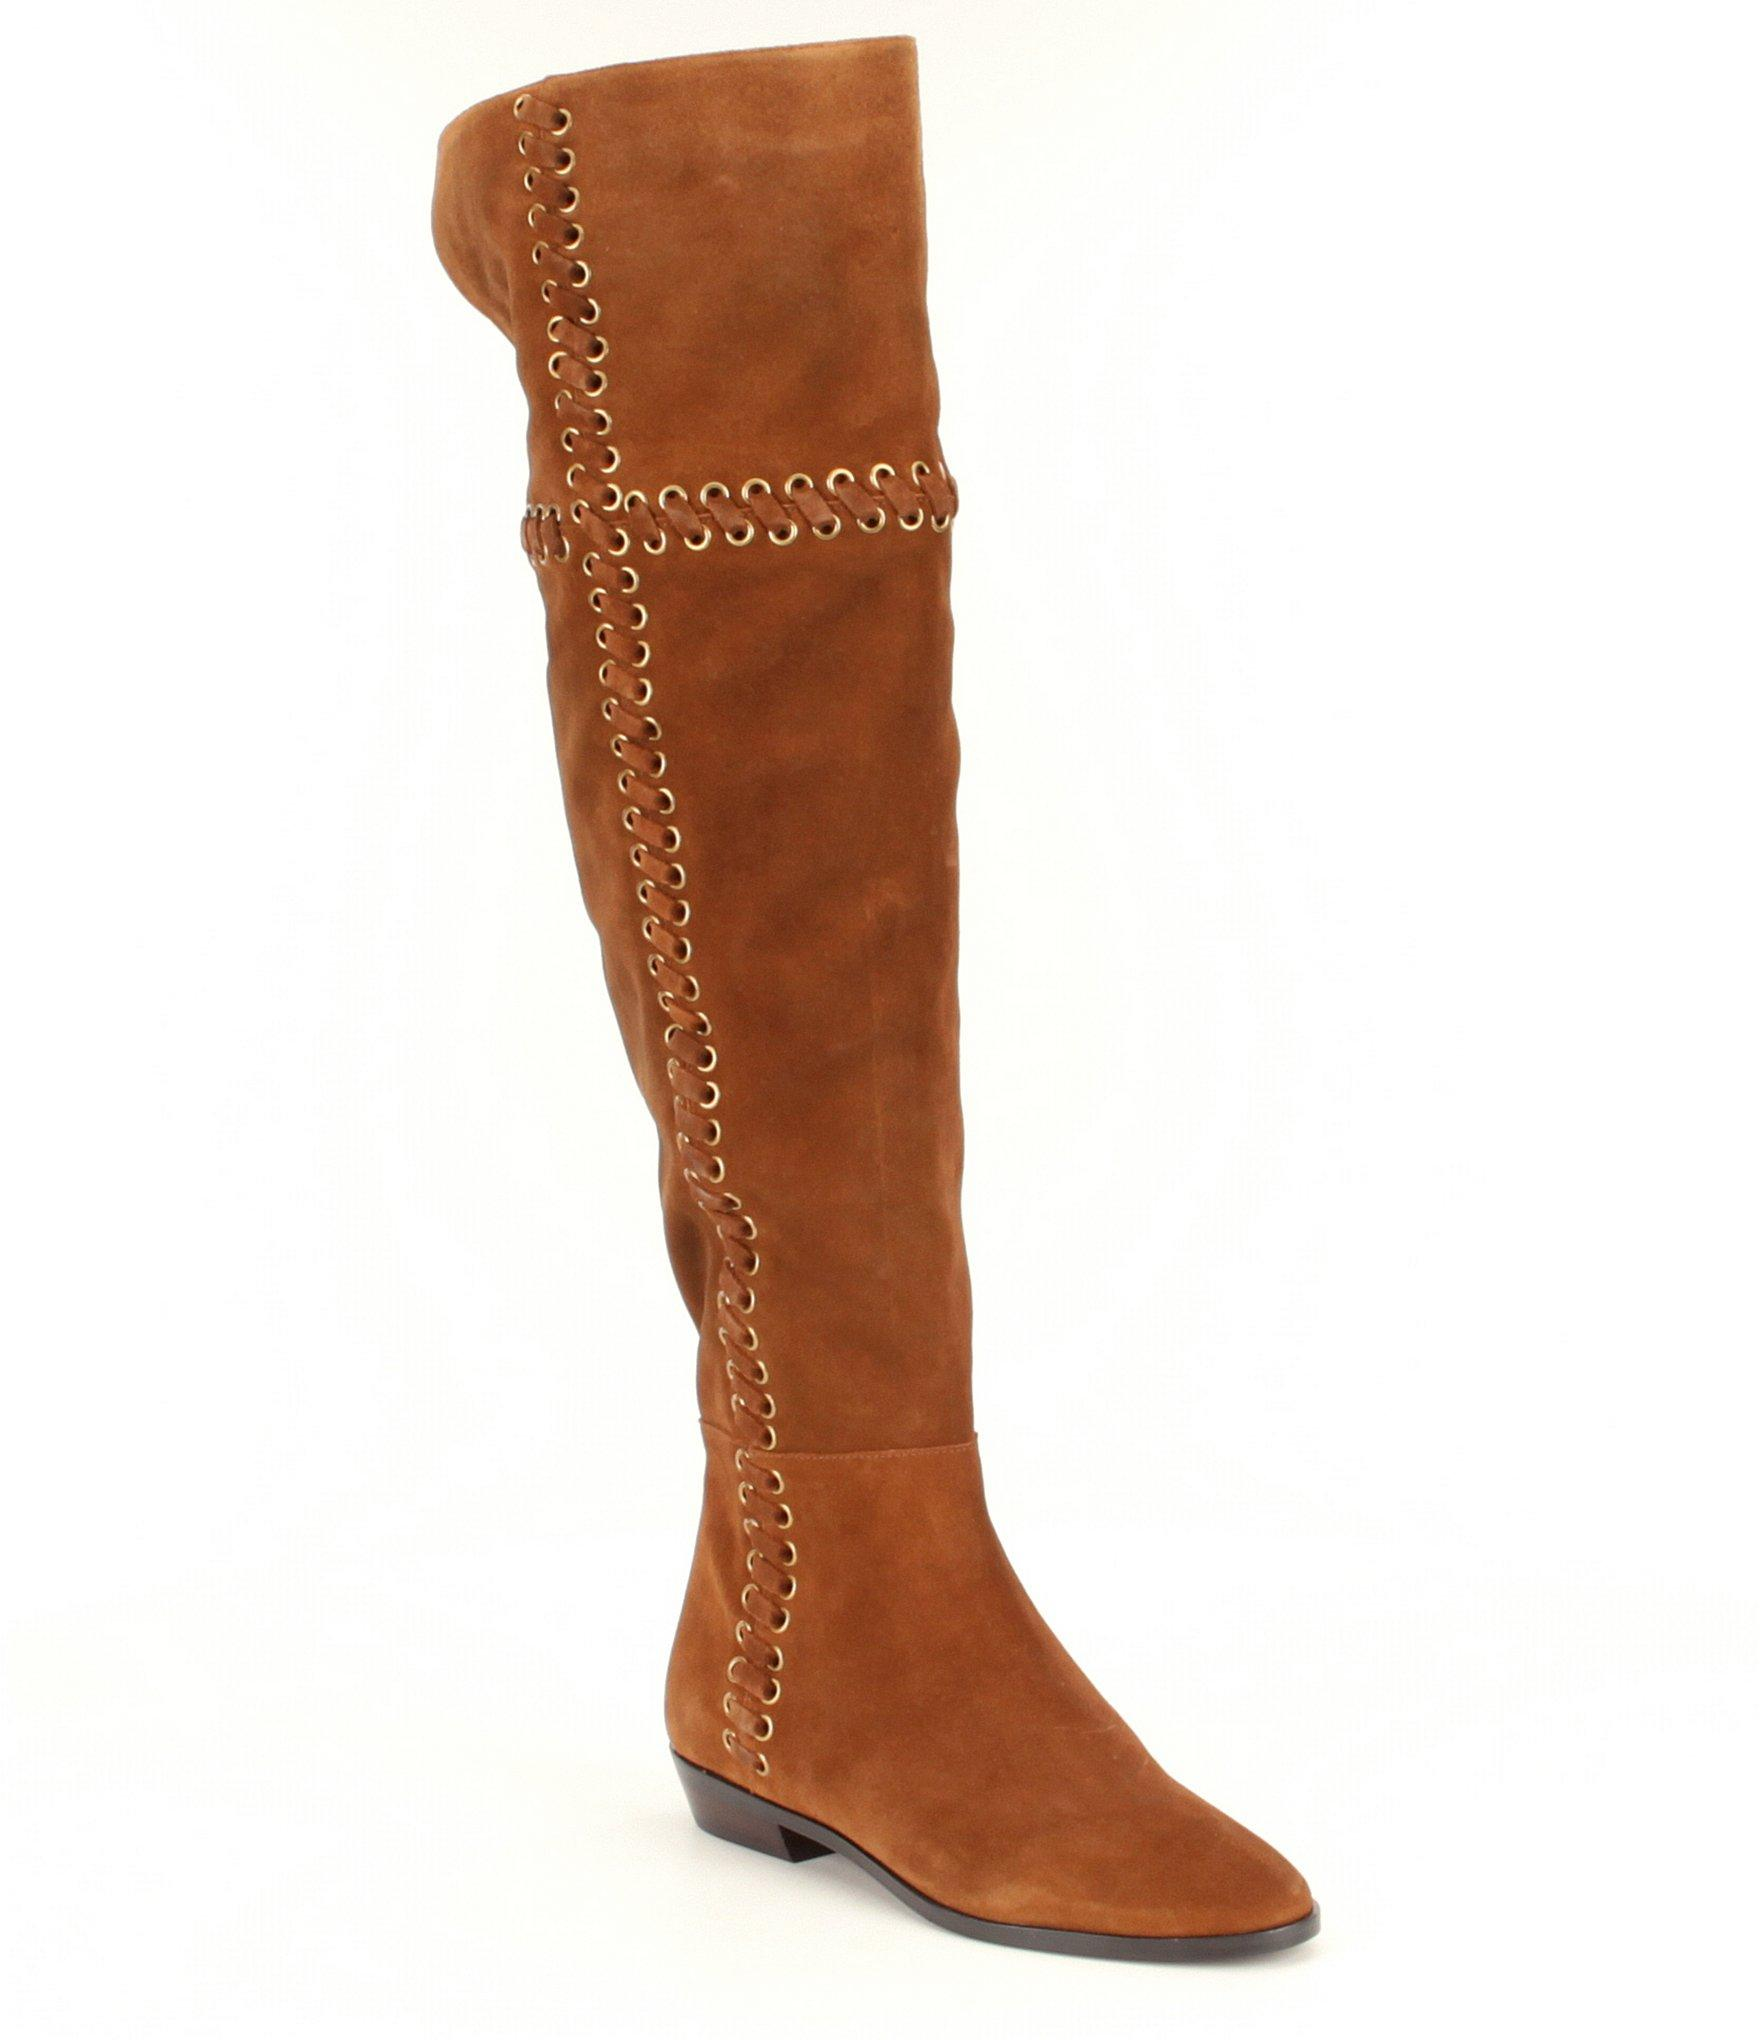 michael kors malin grommet suede boot in brown lyst